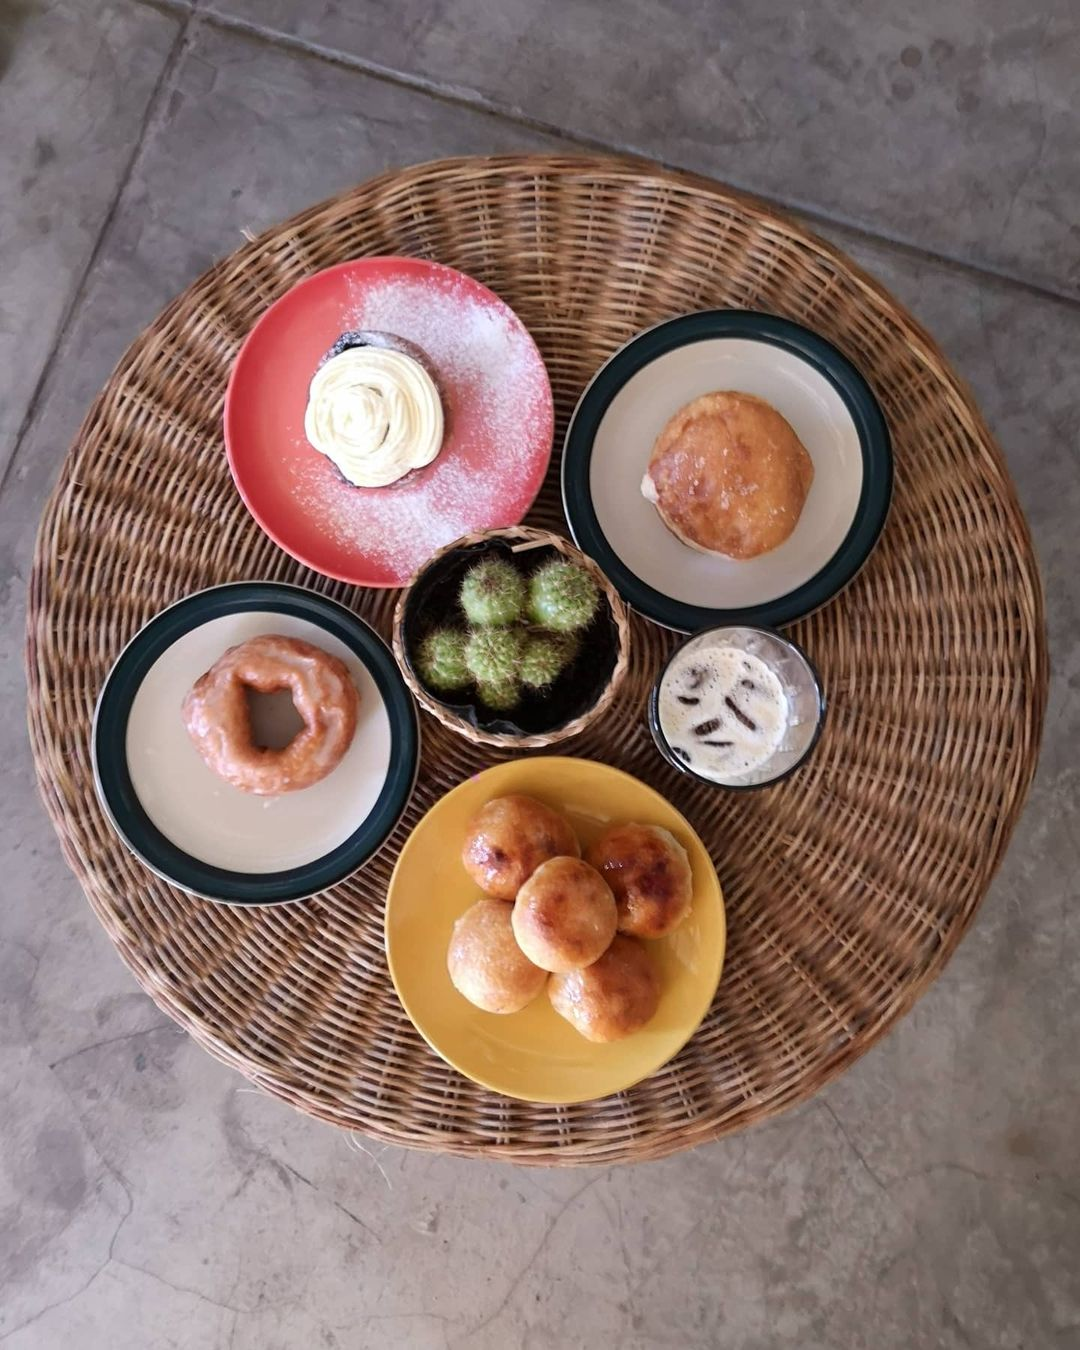 A top shot of a basket with a selection of Masa Bakery's pastries. On the center of the basket is a small cactus in a pot, surrounded by four plates of varying sizes and colors. One each plate is a different kind of pastry. In between two of these plates is a glass filled with beverage.